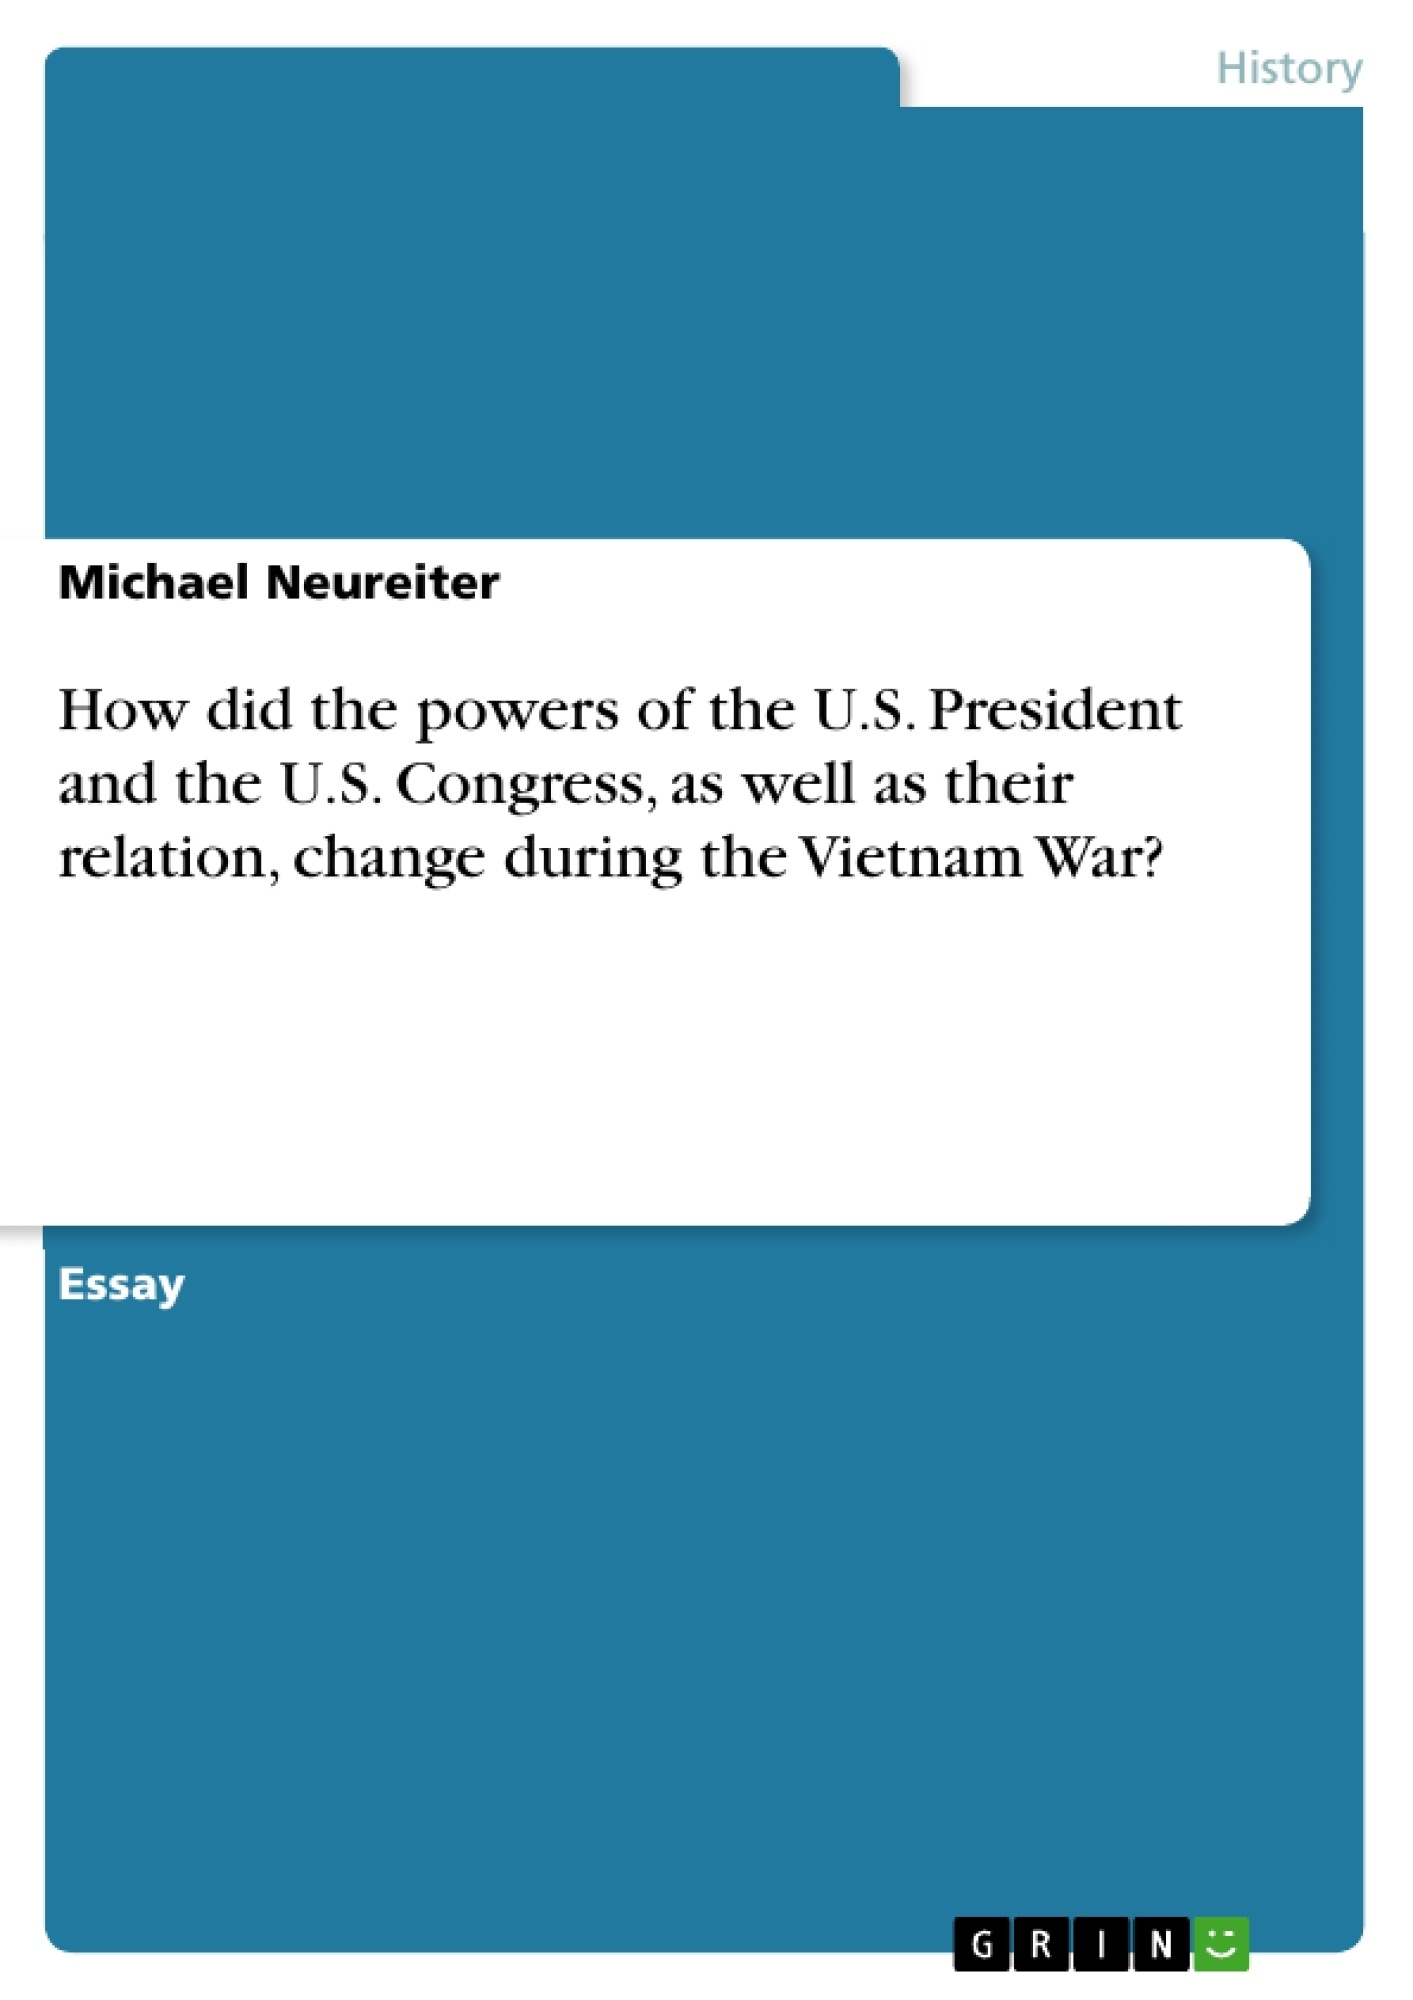 Title: How did the powers of the U.S. President and the U.S. Congress, as well as their relation, change during the Vietnam War?